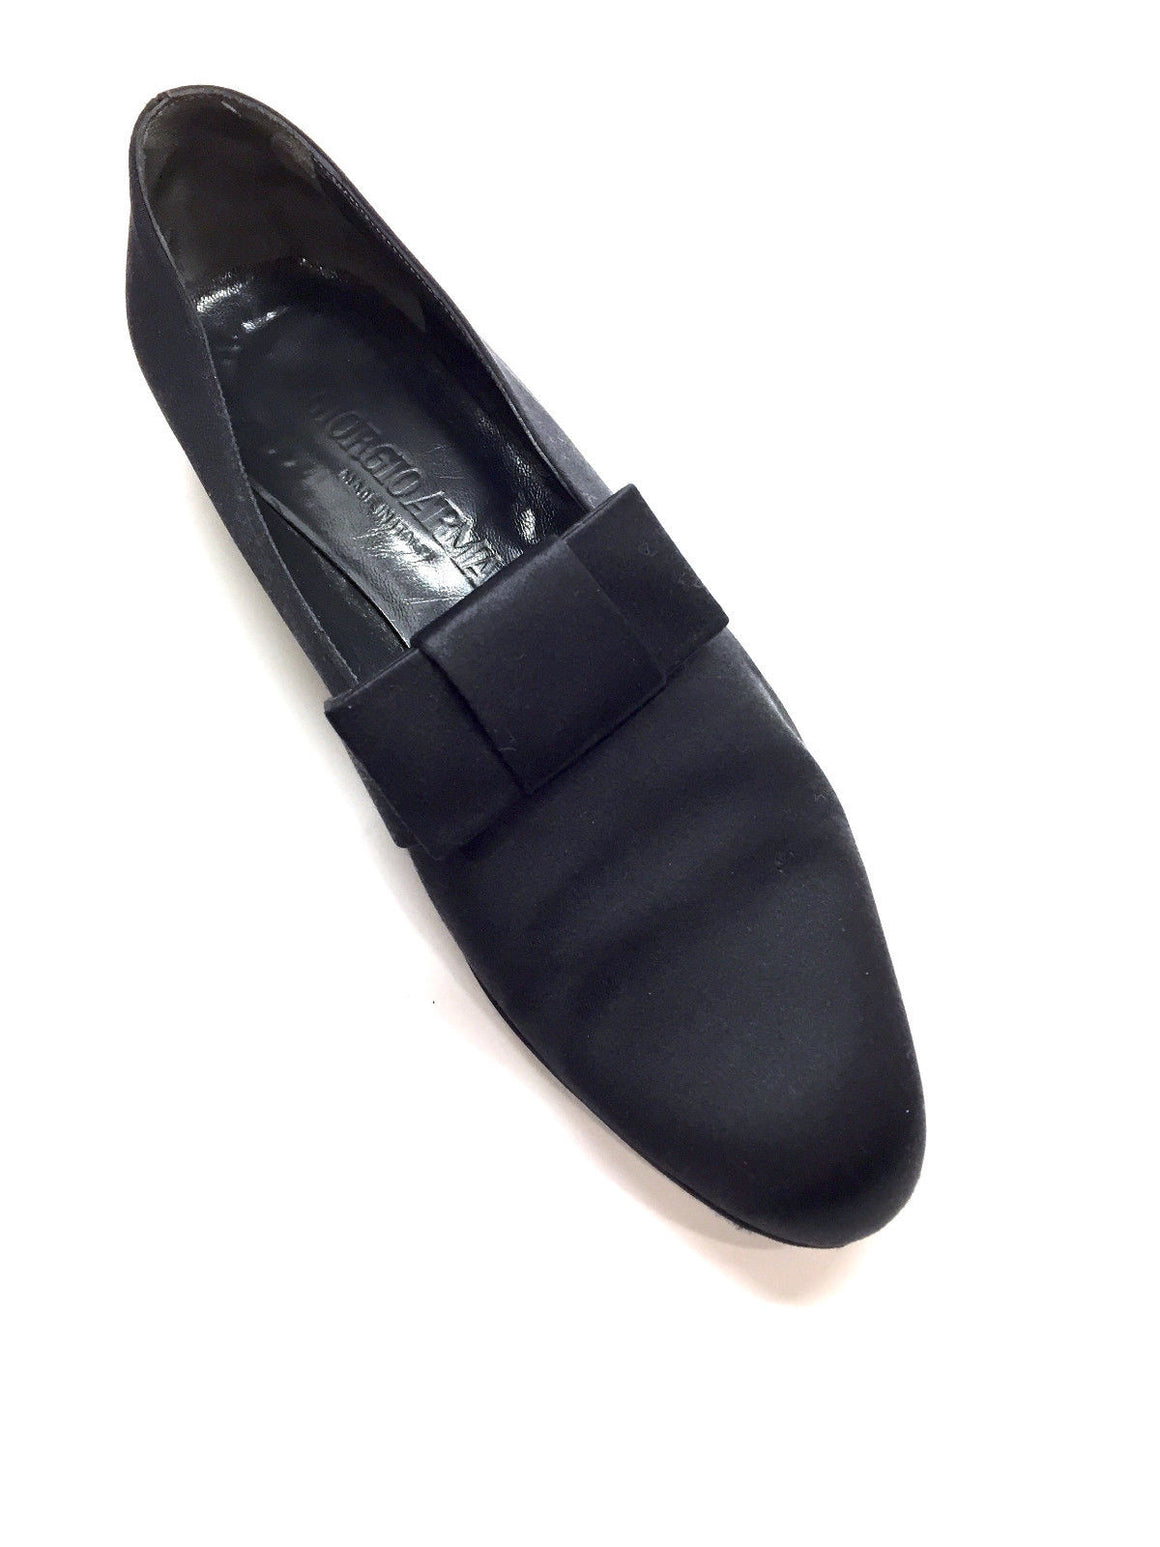 bisbiz.com GIORGIO ARMANI Black Silk Flat-Bow Slip-On Tuxedo Flats Shoes  Size: 37.5 / US 7.5 - Bis Luxury Resale